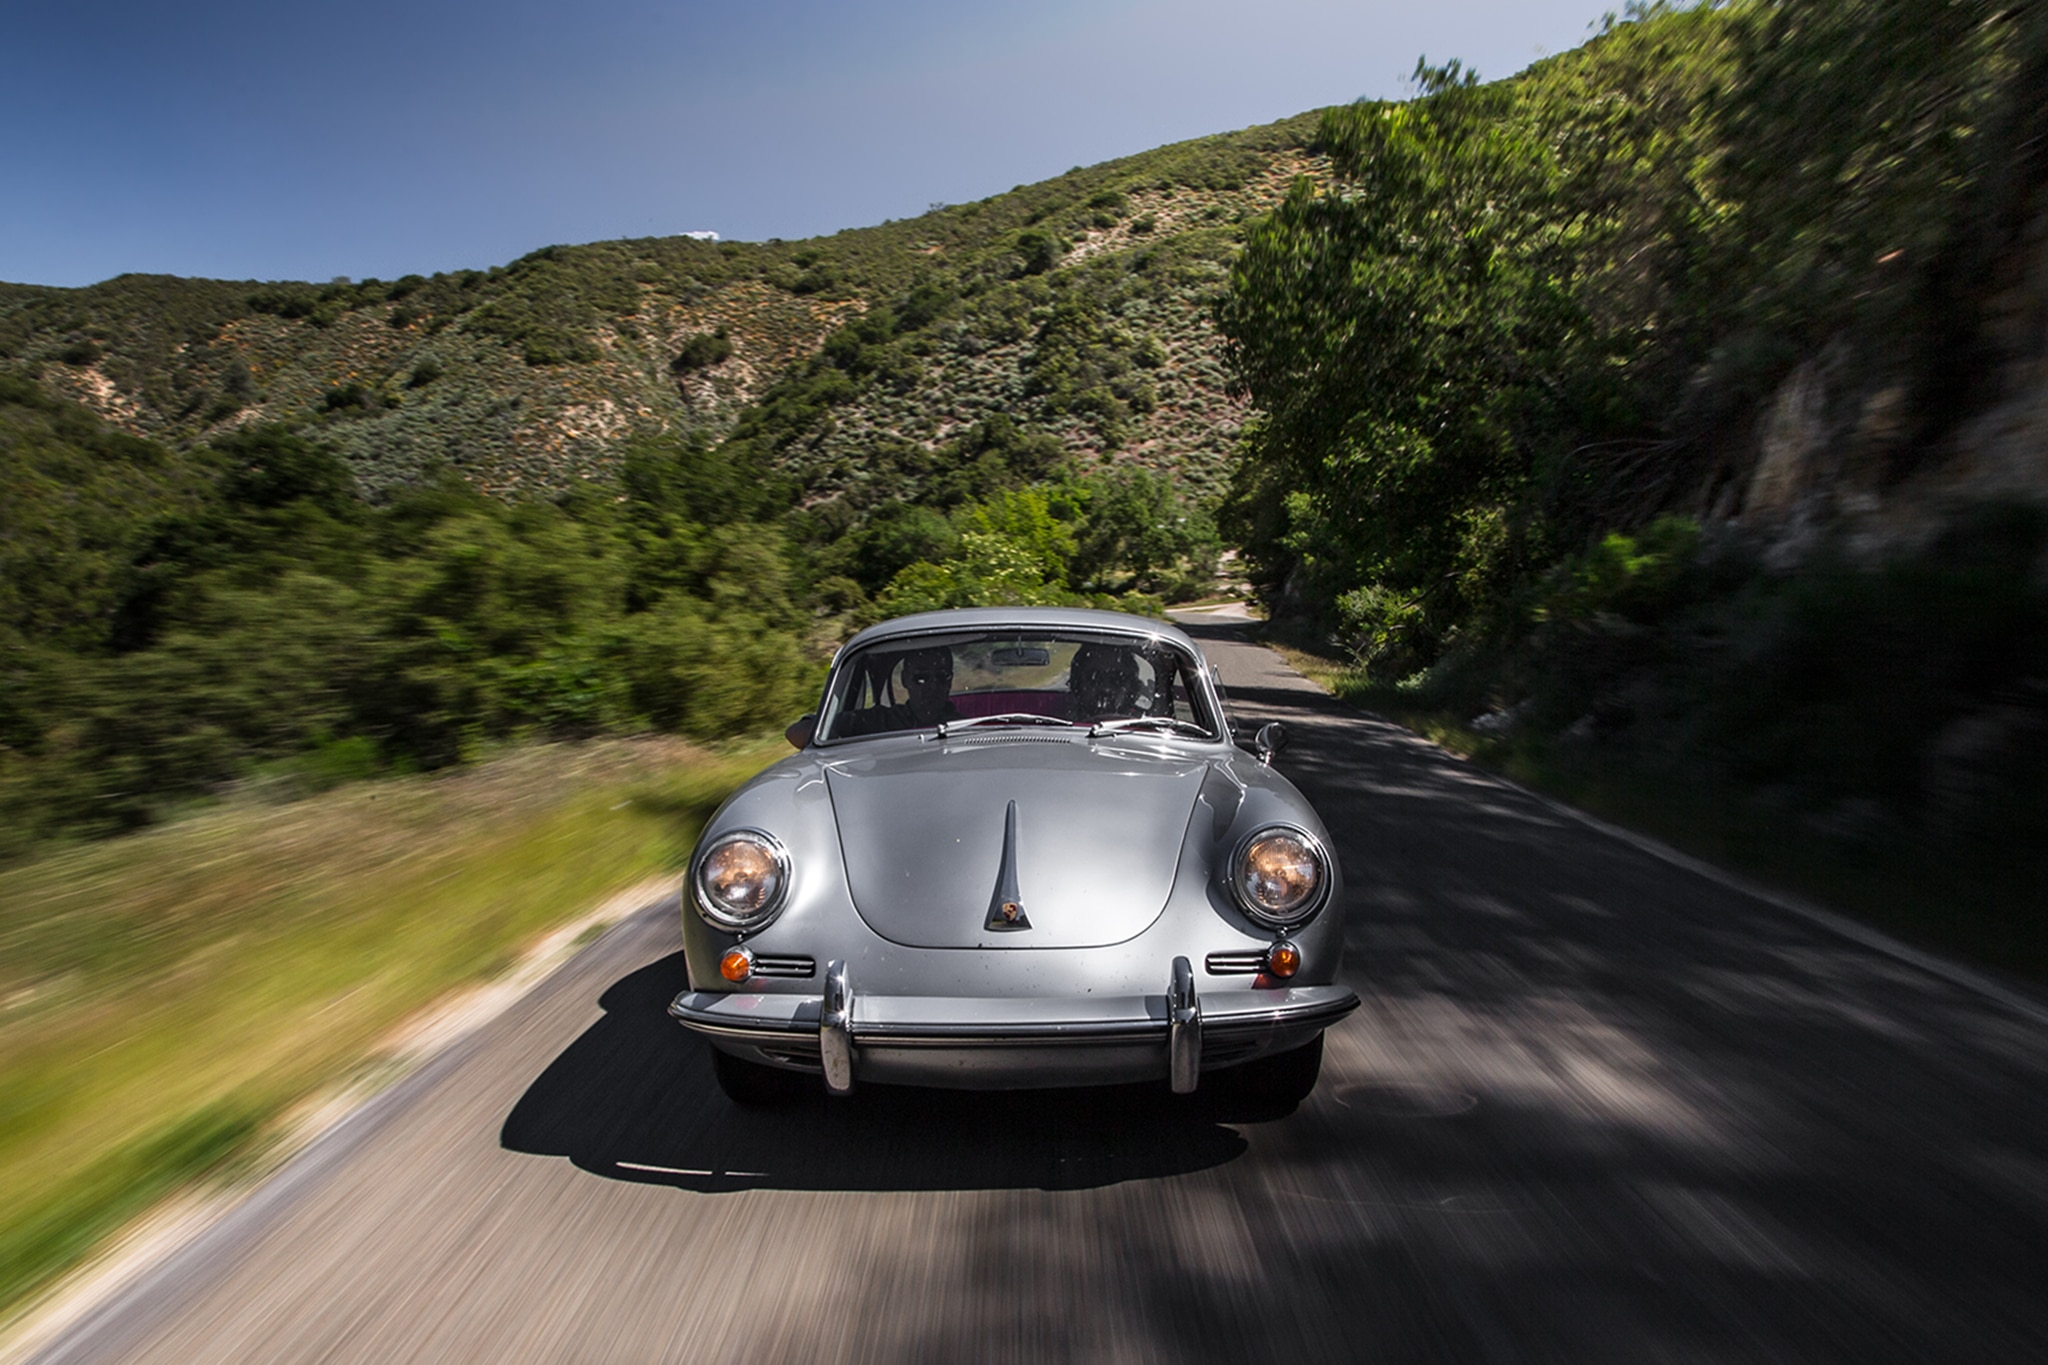 1964 Porsche 356 C Front View In Motion 02